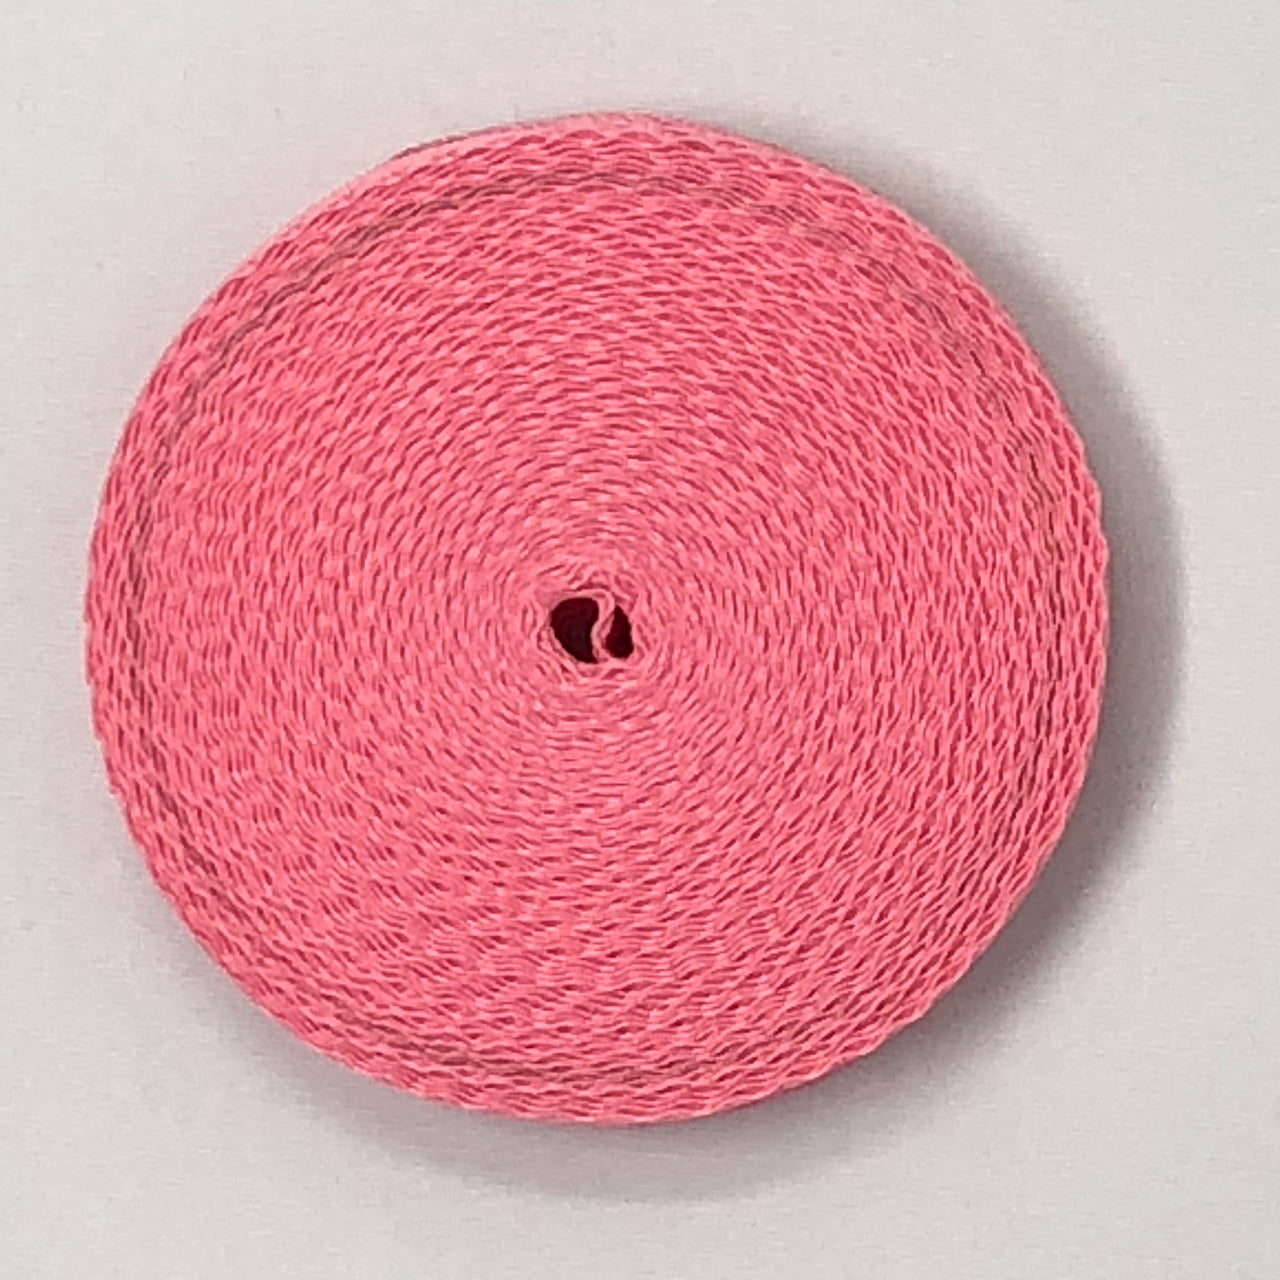 Legal String Pink (1 PC)